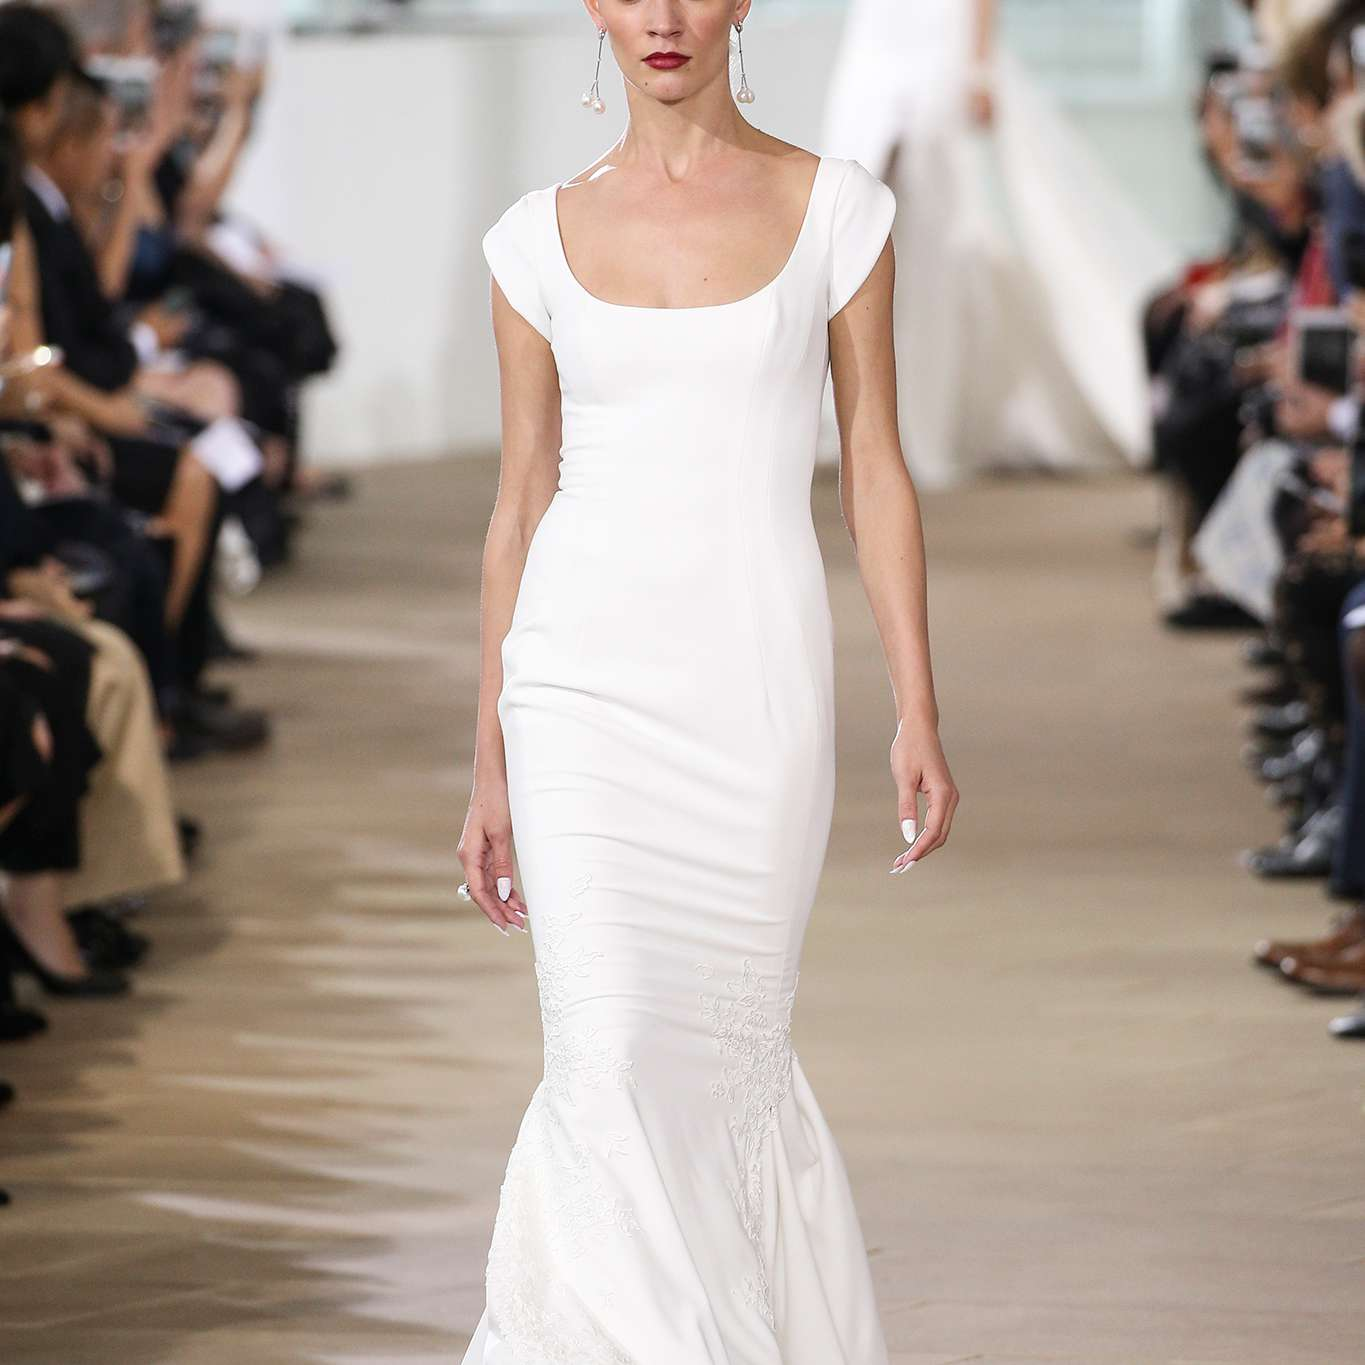 Wedding Gowns For Petite Figures: 100+ Wedding Dresses Perfect For Petite Figures